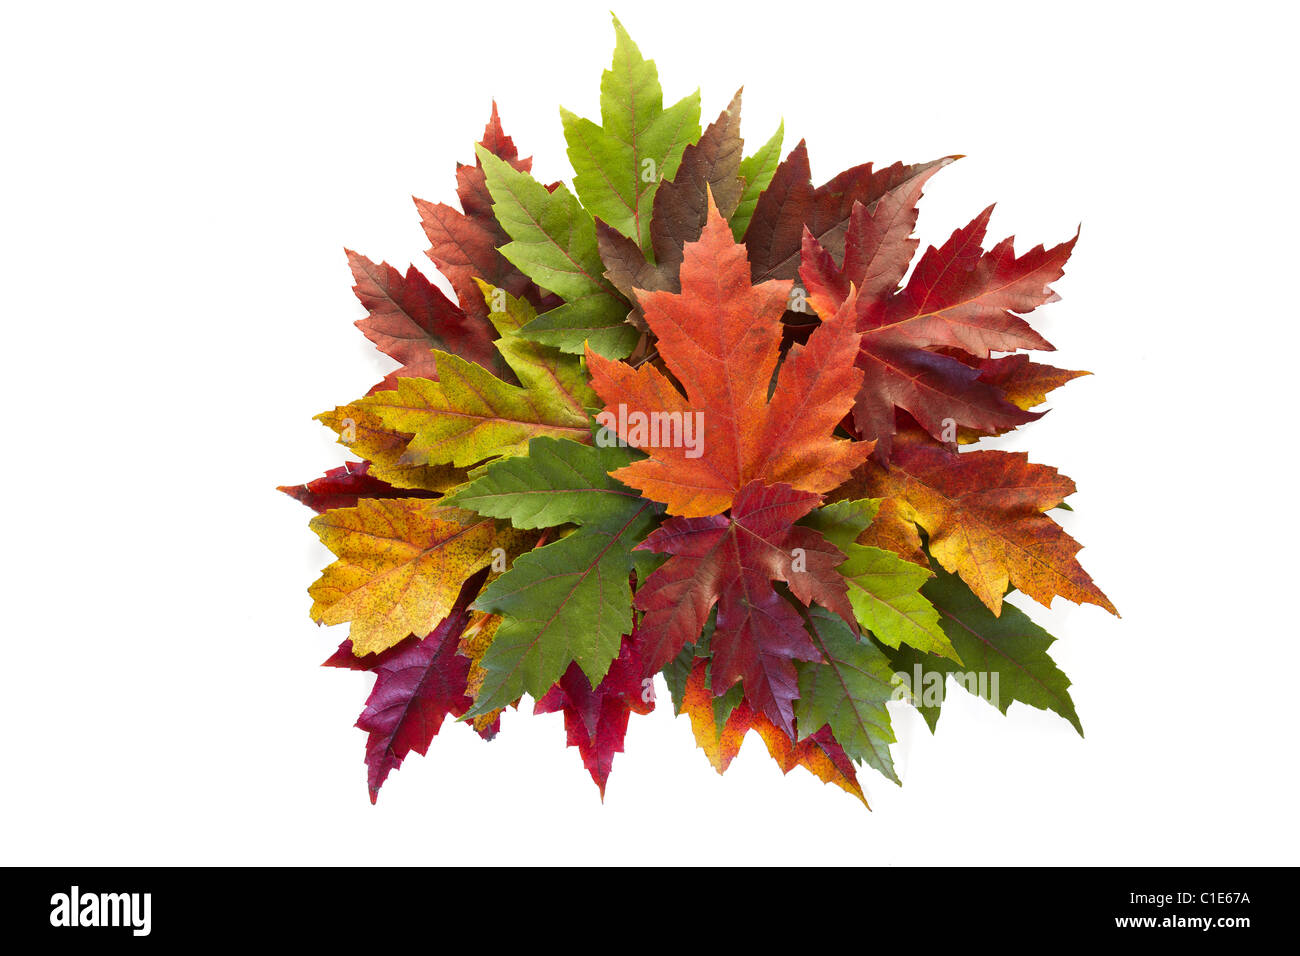 Maple Leaves Mixed Fall Colors Autumn Wreath on White Background - Stock Image